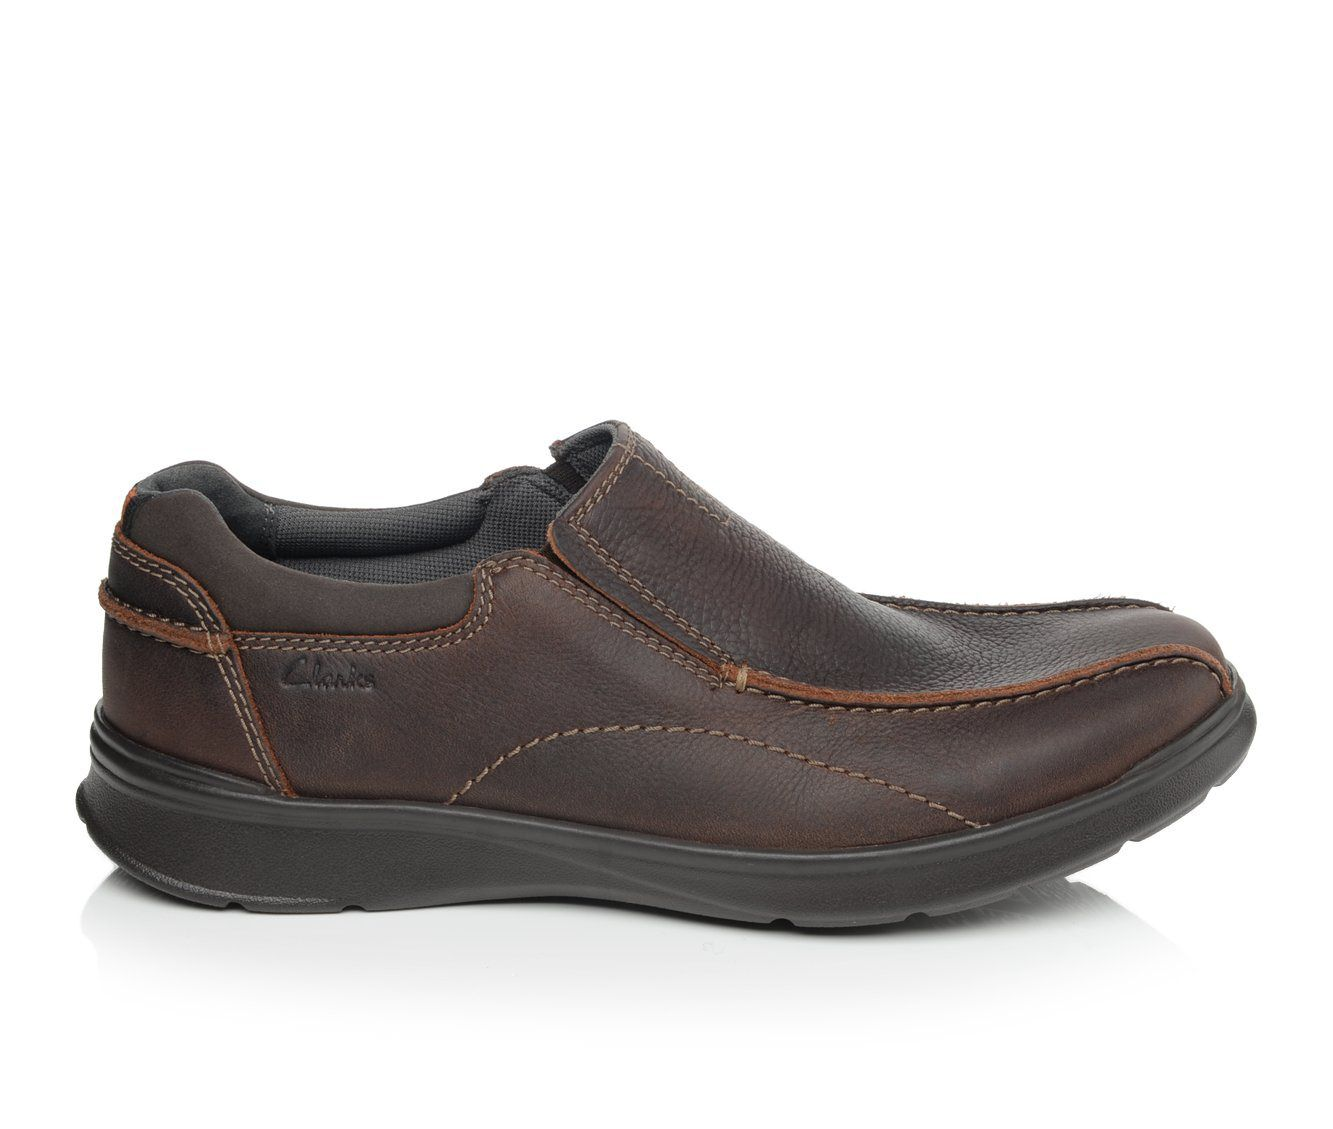 Men's Clarks Cotrell Step Slip-On Shoes Brown